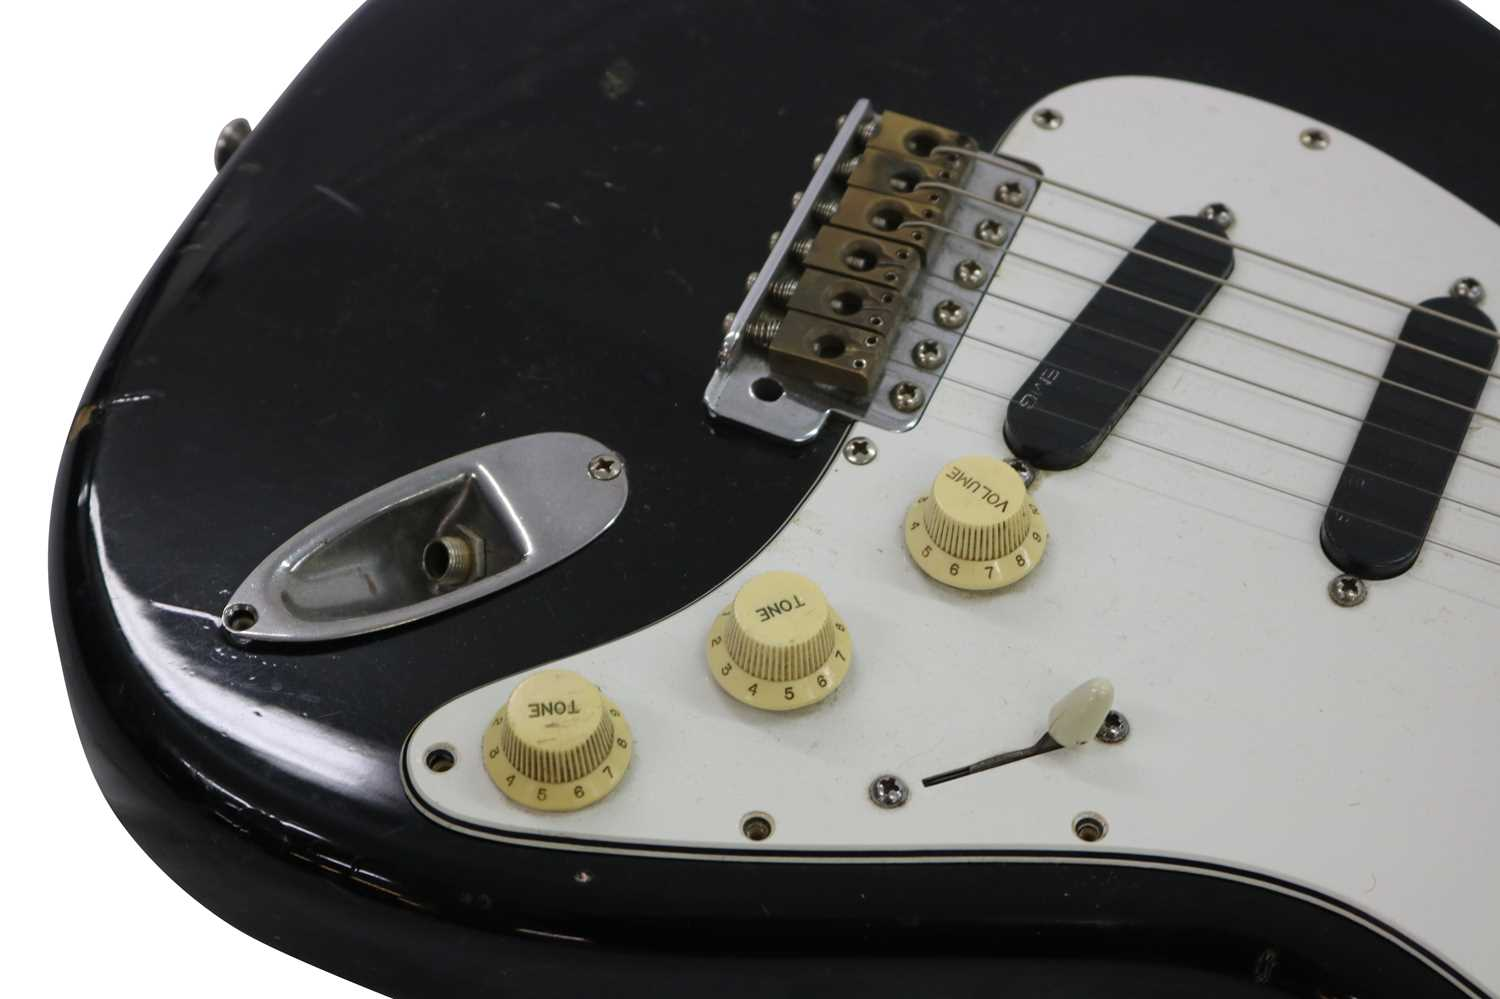 R.C.GIFFIN 6 STRING ELECTRIC GUITAR - Image 3 of 9